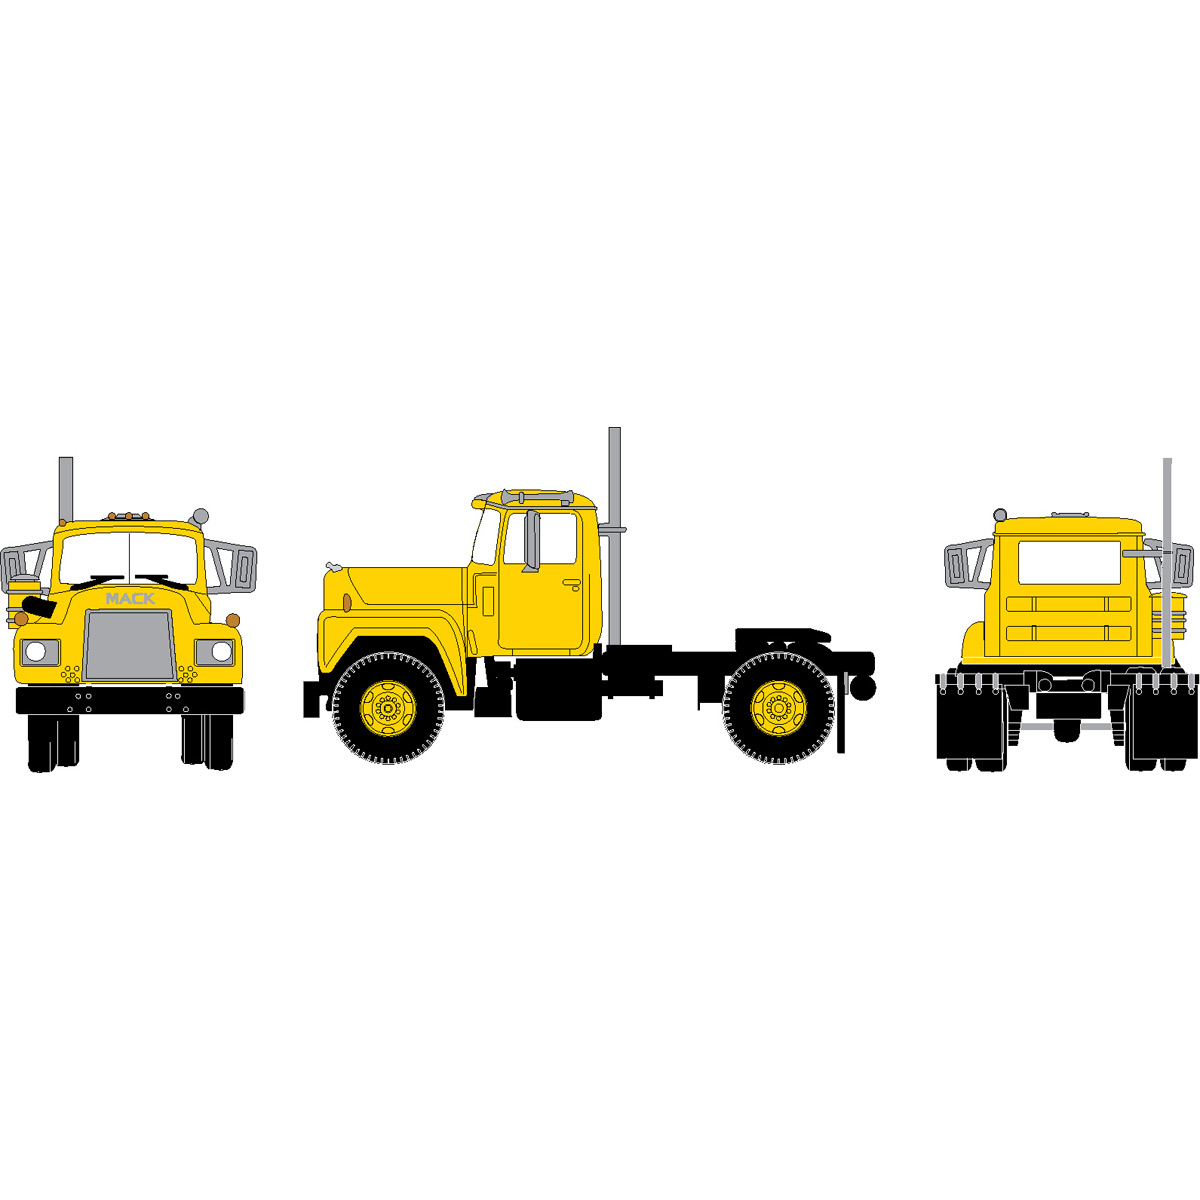 Athearn N Scale 3 Axle Tractor : Ho rtr mack r tractor w axle yellow ath athearn